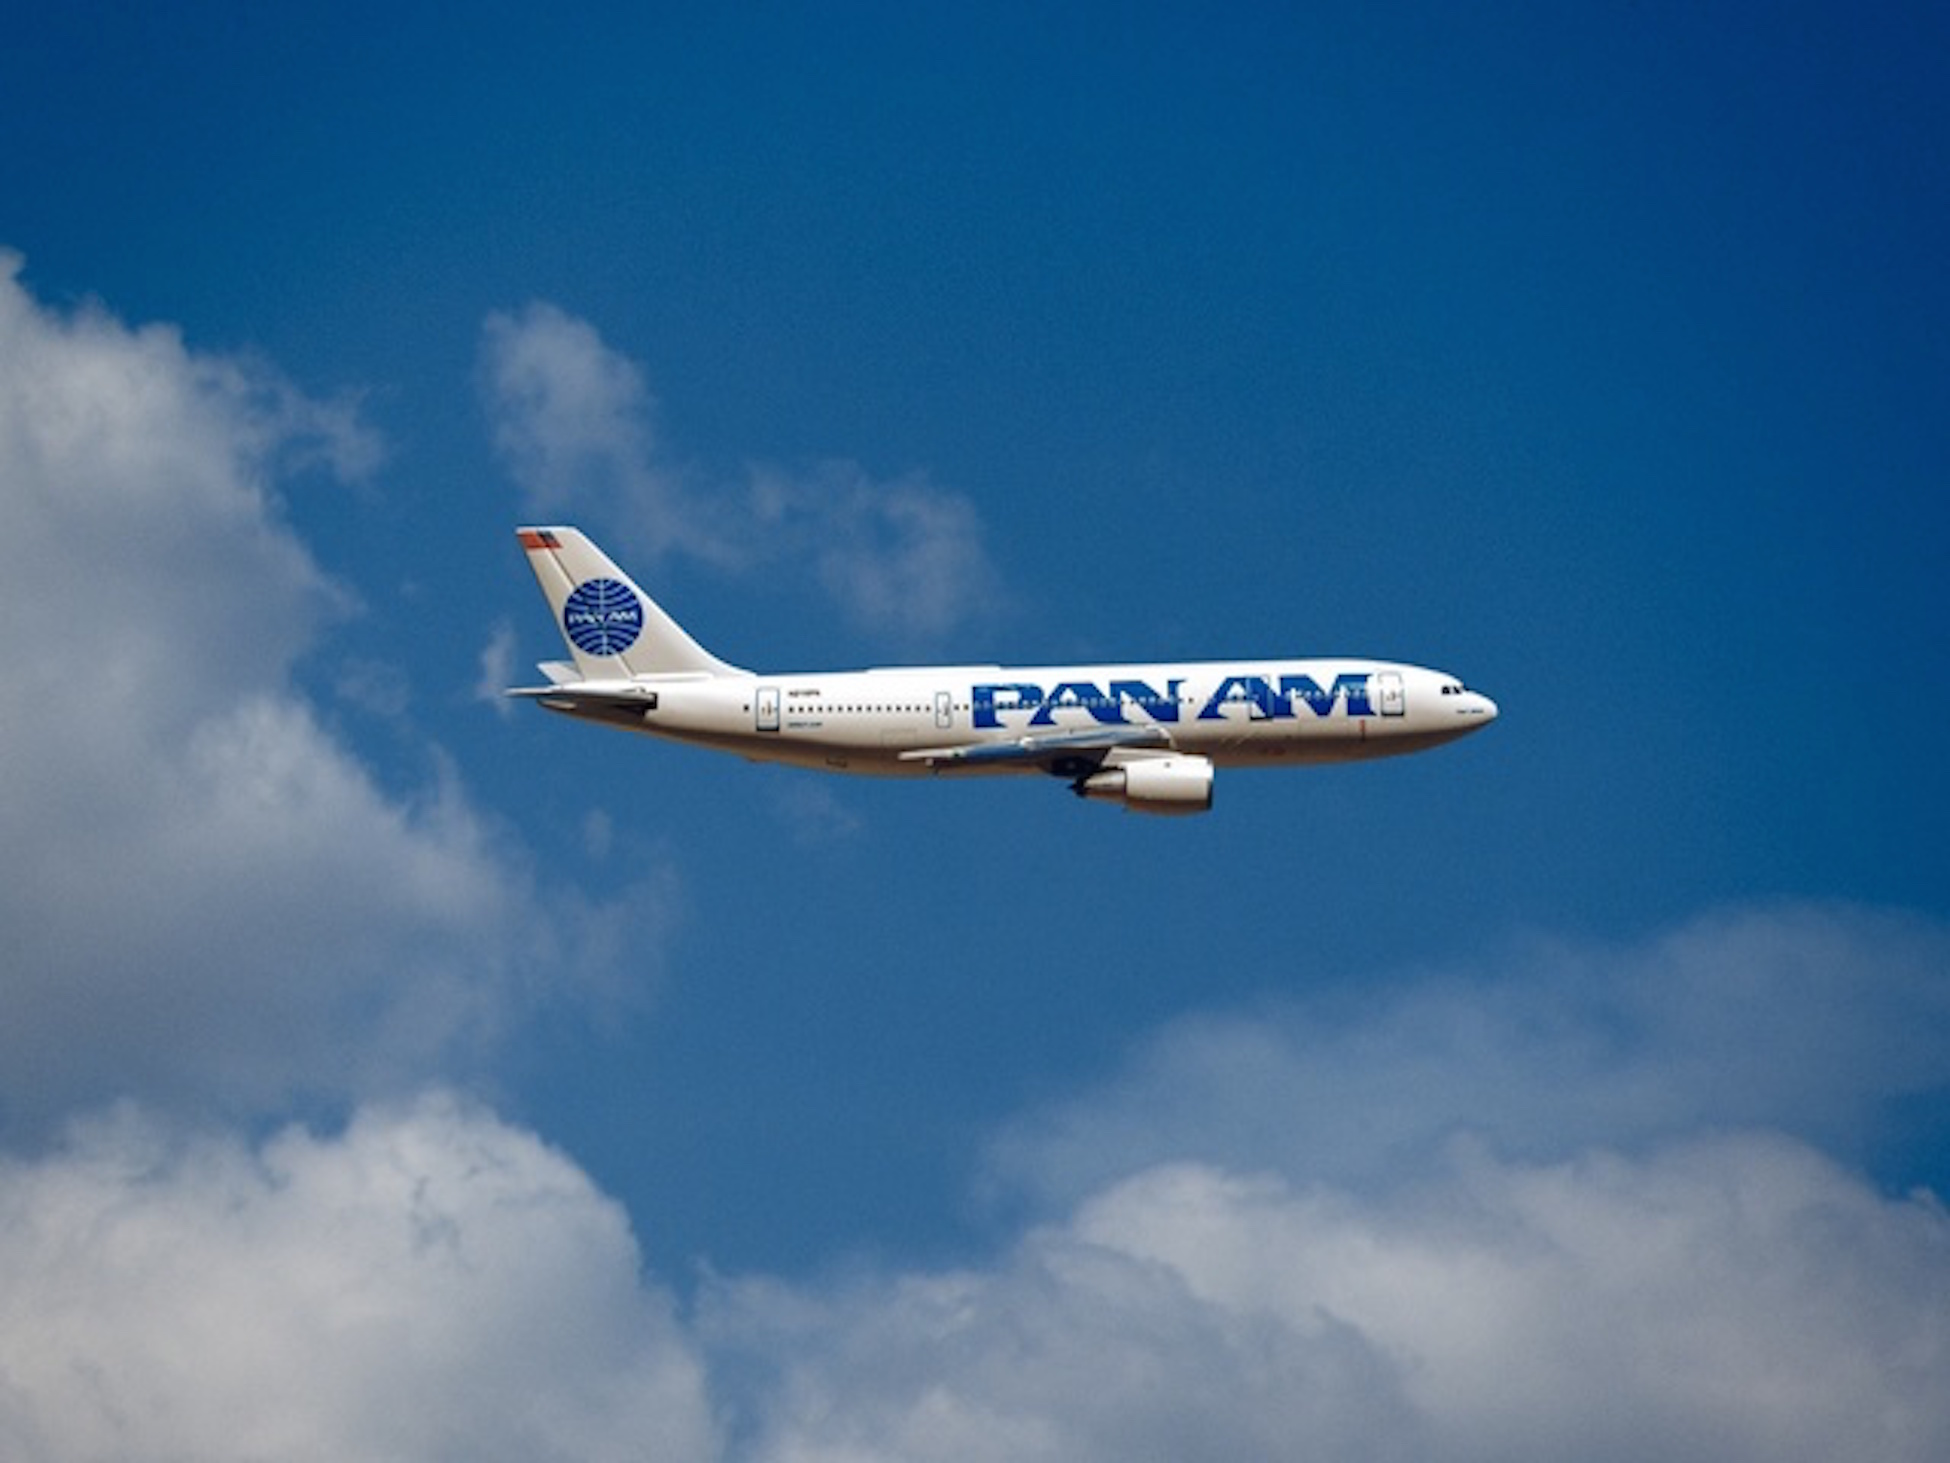 Pan Am by Tyler Shields